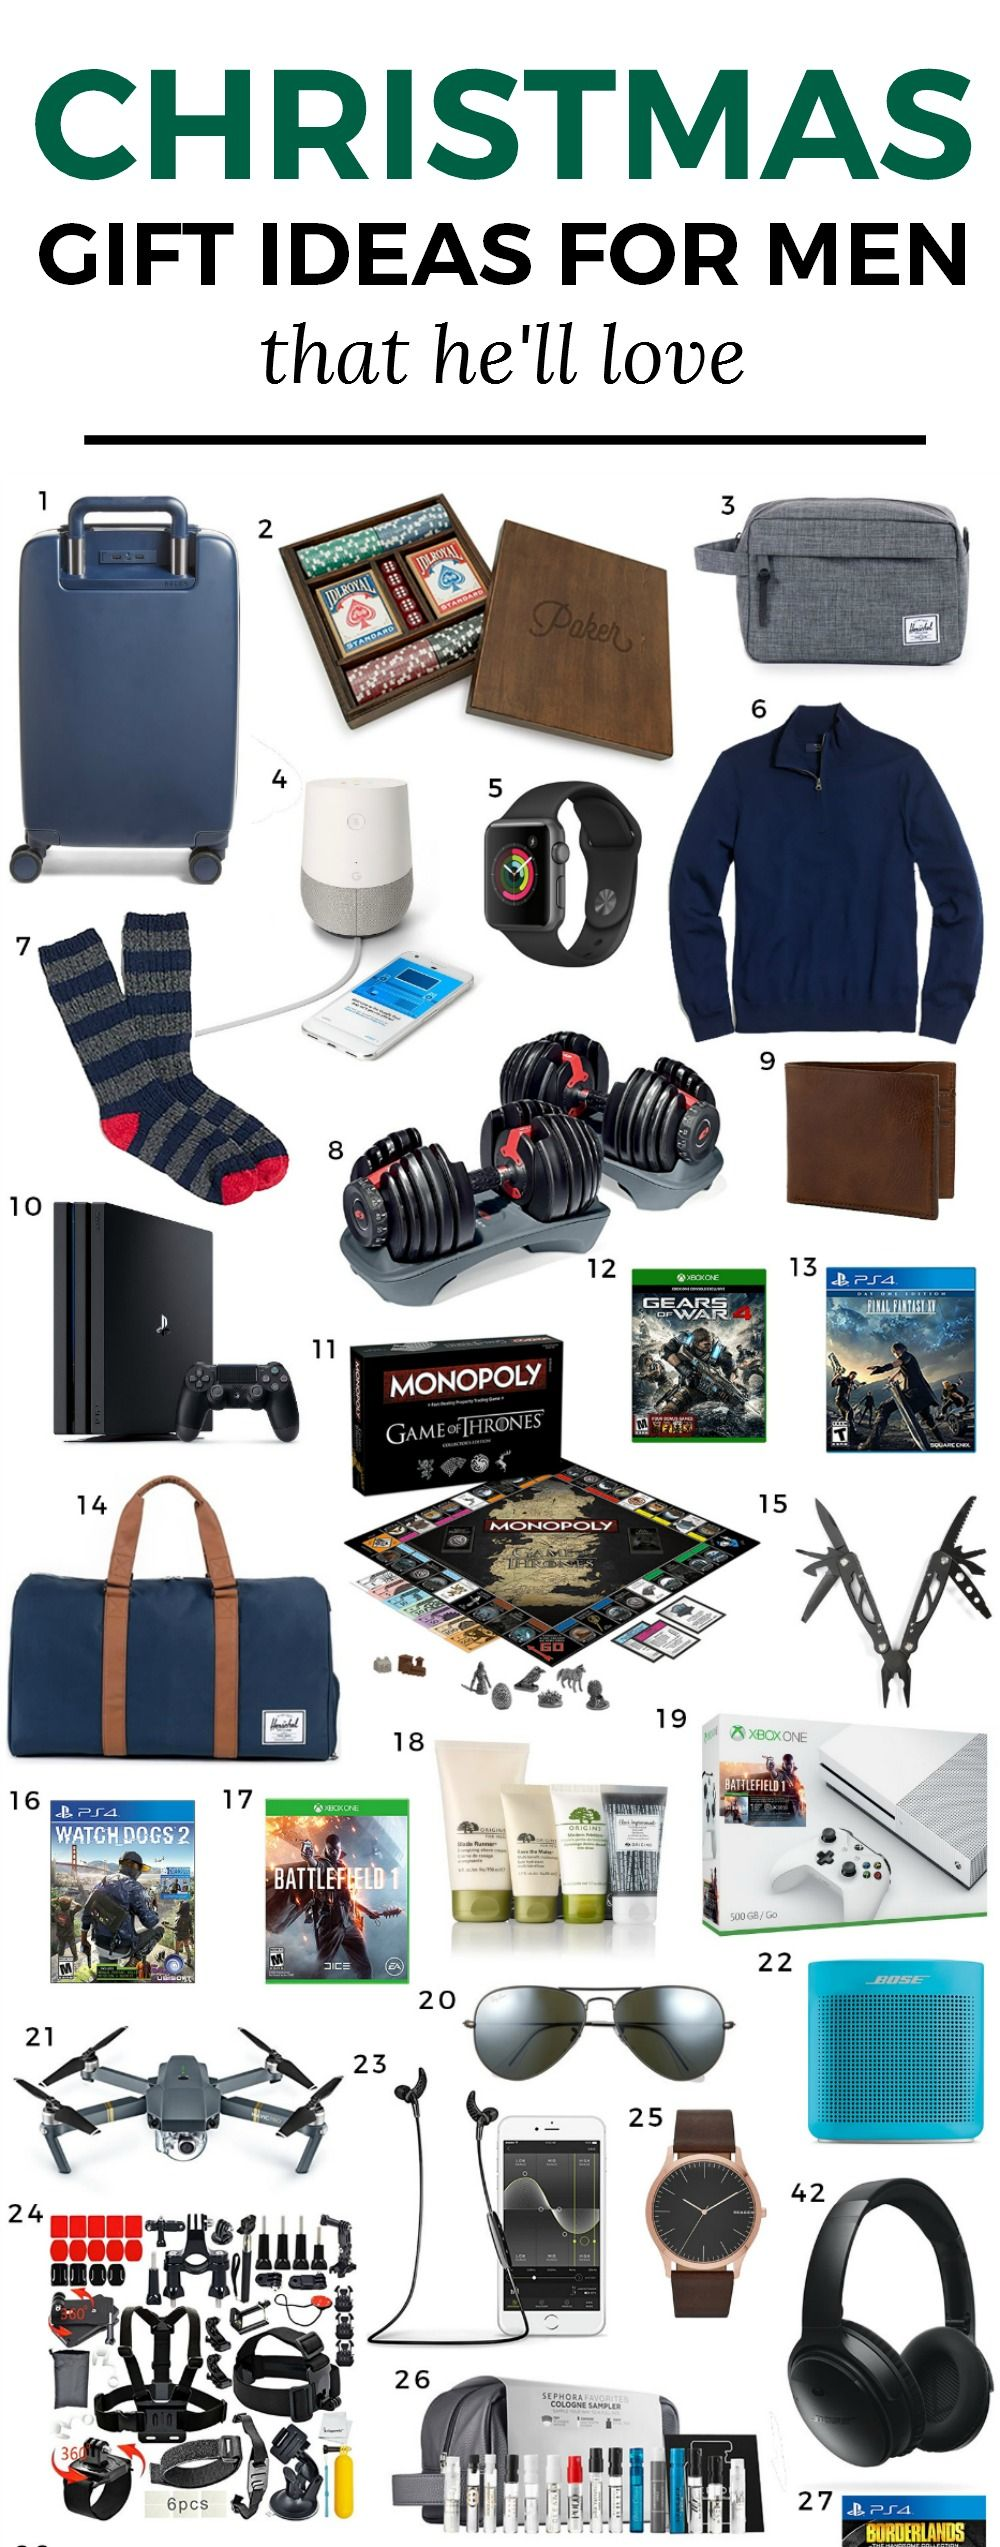 the best christmas gift ideas for men the ultimate christmas gift guide for men by blogger ashley brooke nicholas featuring man approved gift ideas - Best Christmas Gifts For Men